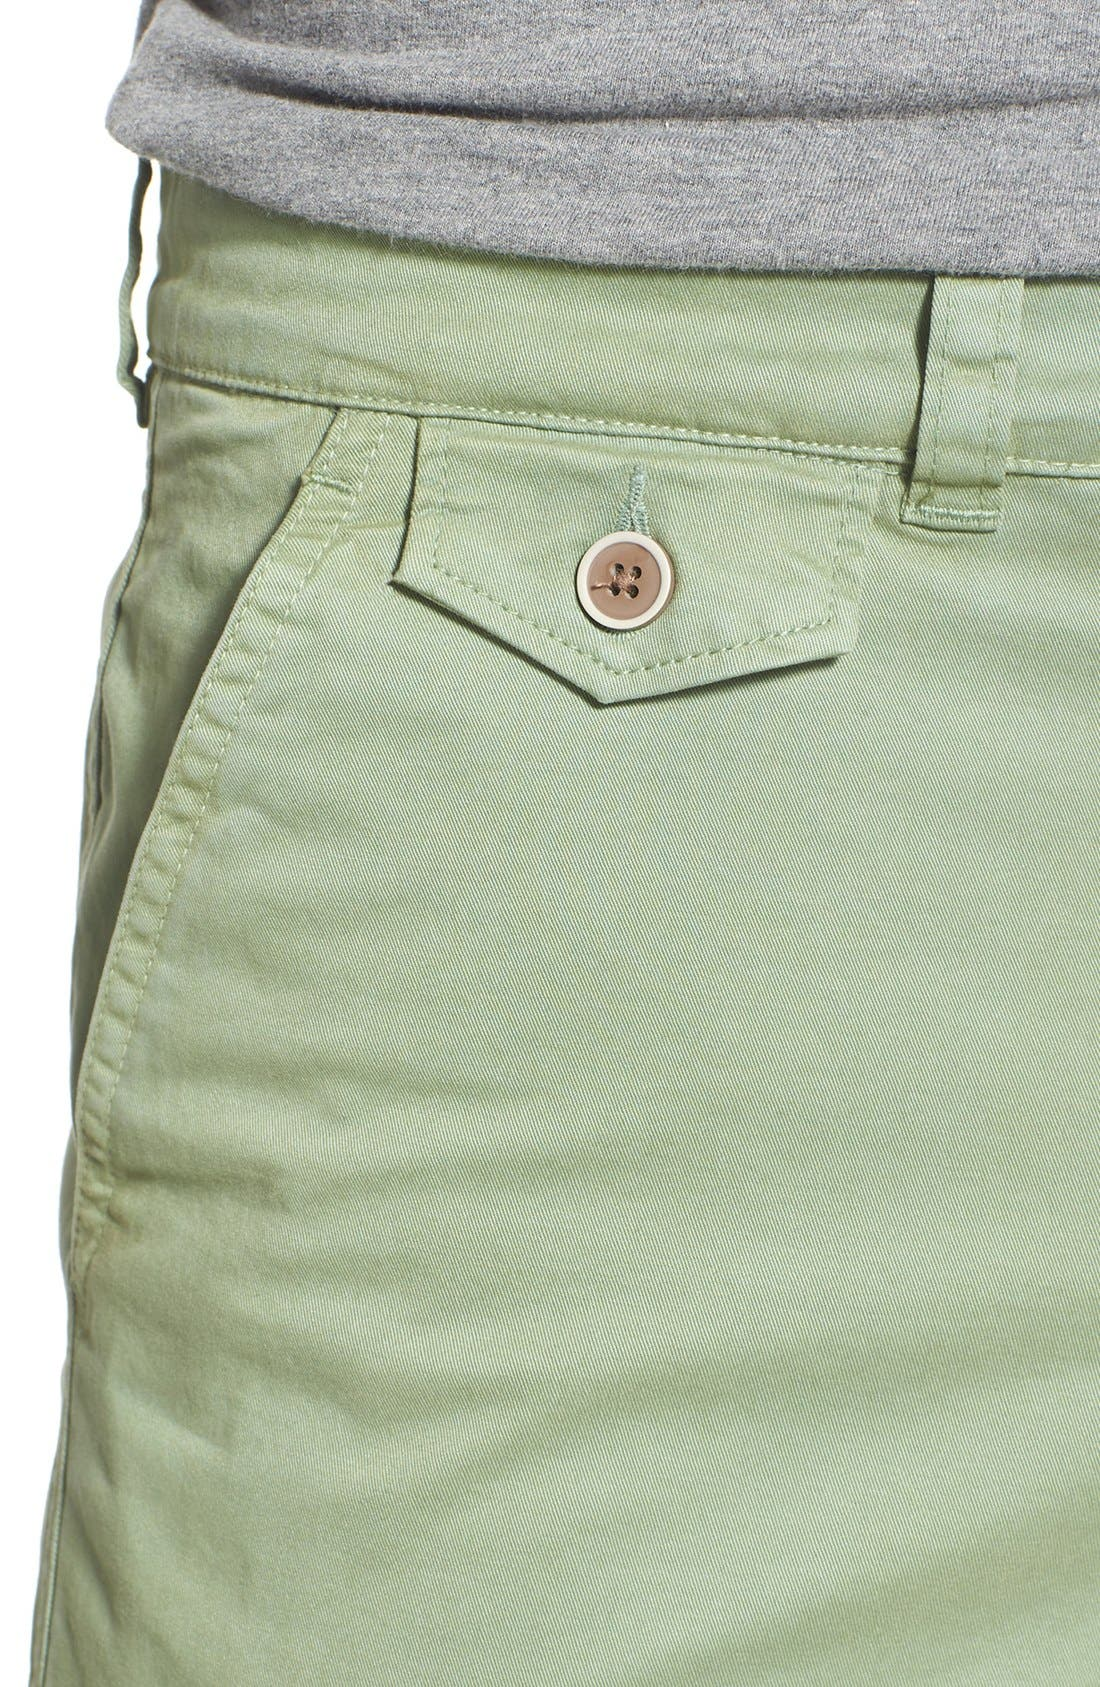 'Sunny' Stretch Chino Shorts,                             Alternate thumbnail 19, color,